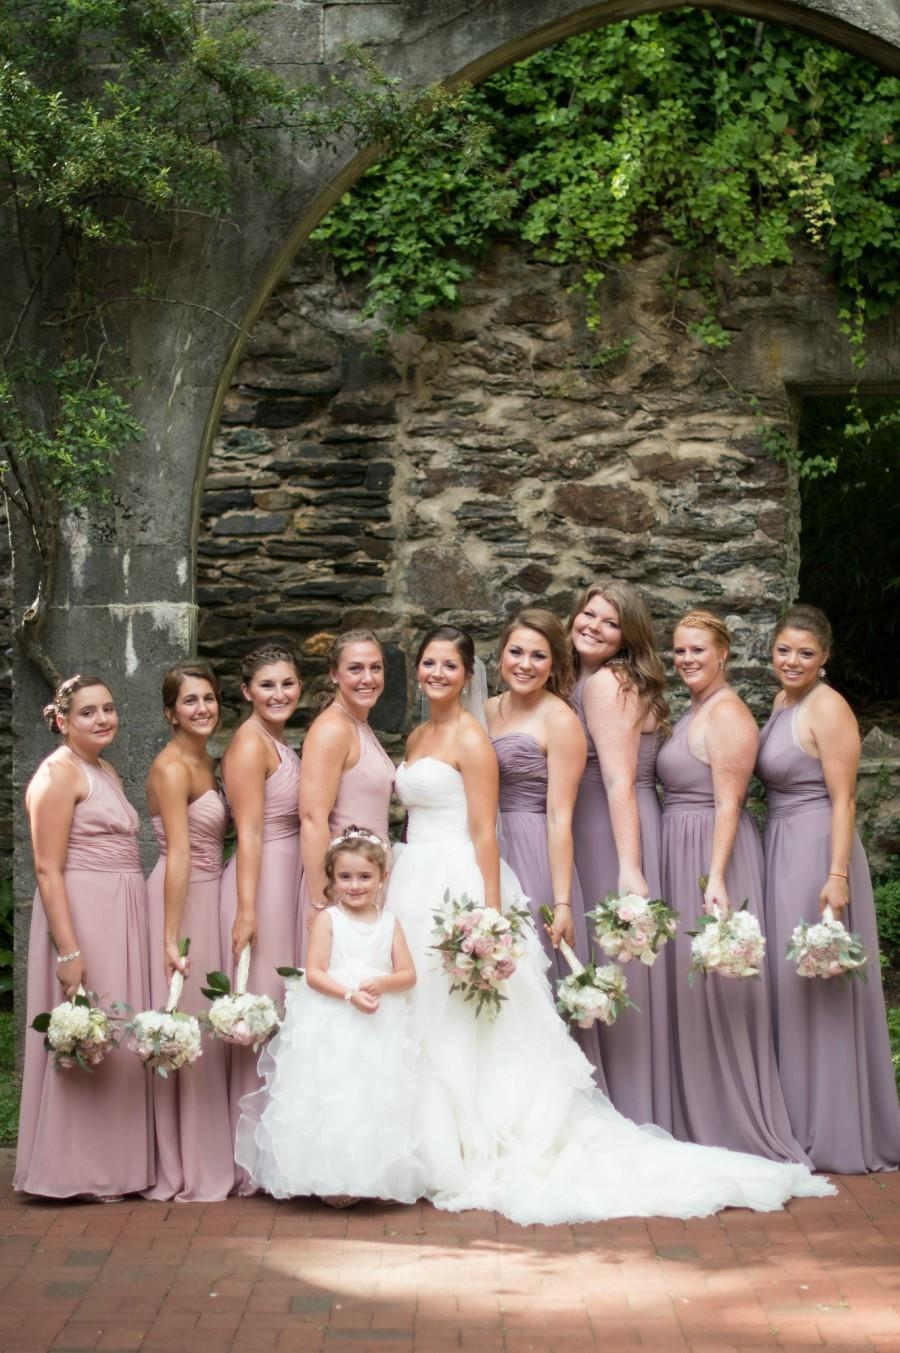 Natural elegant wedding at old mill rose valley by table 1 events natural elegant wedding at the old mill by table 1 events philadelphia wedding planner philly in ombrellifo Gallery